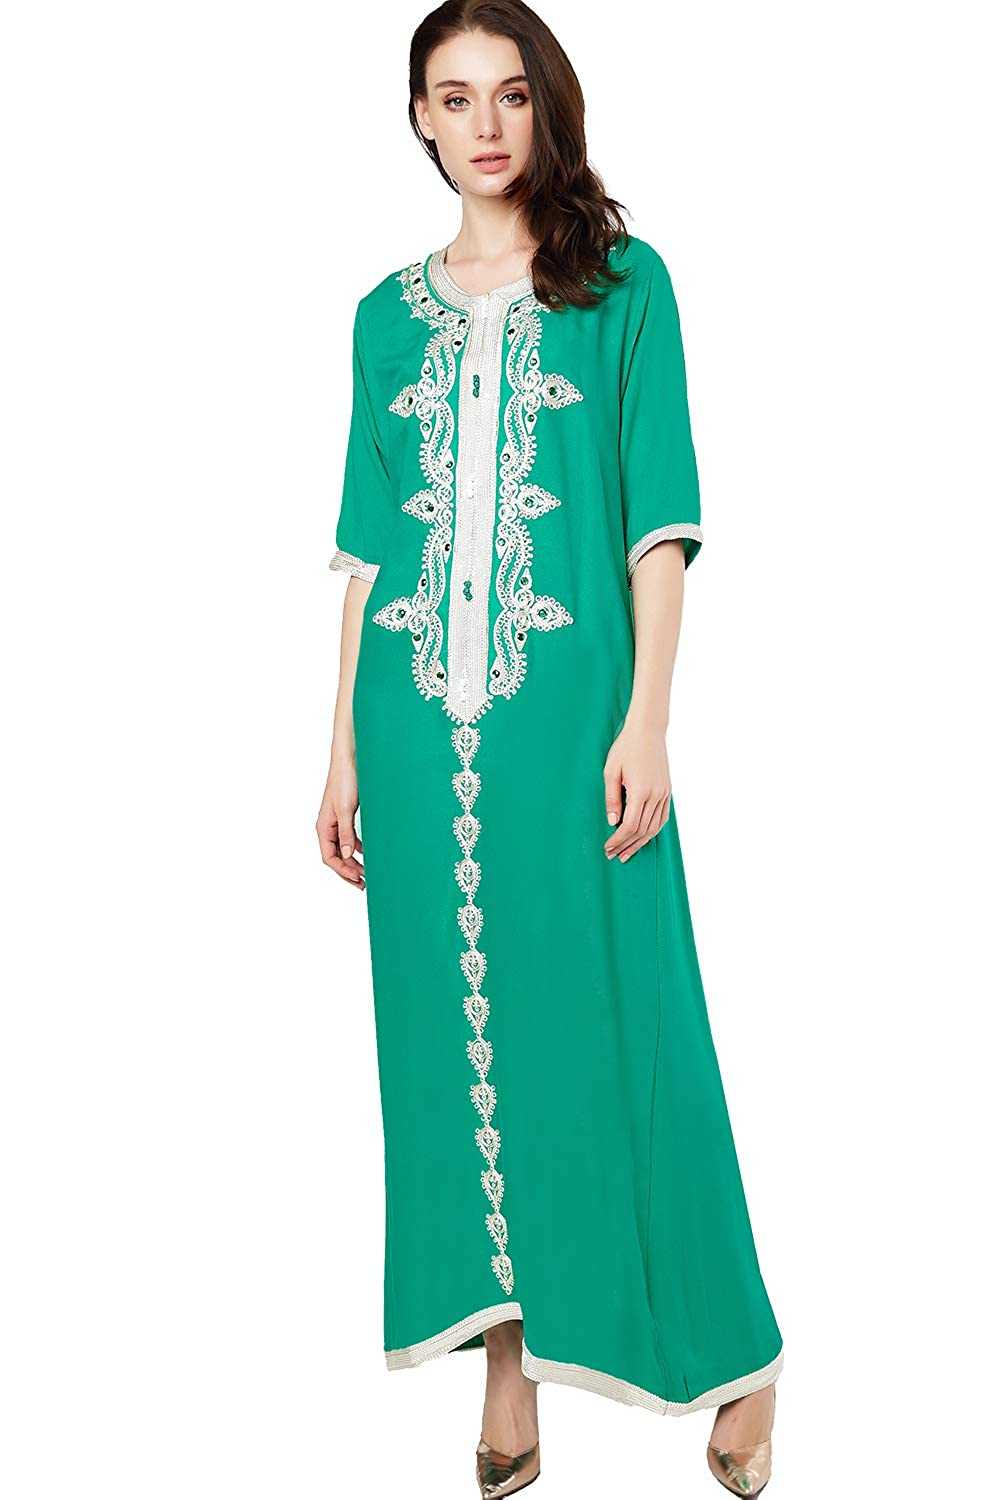 b555e2cf5fb Includes a beautiful tassel belt to tie at the waist. With silky  embroidery. The material will not too thin while still being lightweight  and breathable